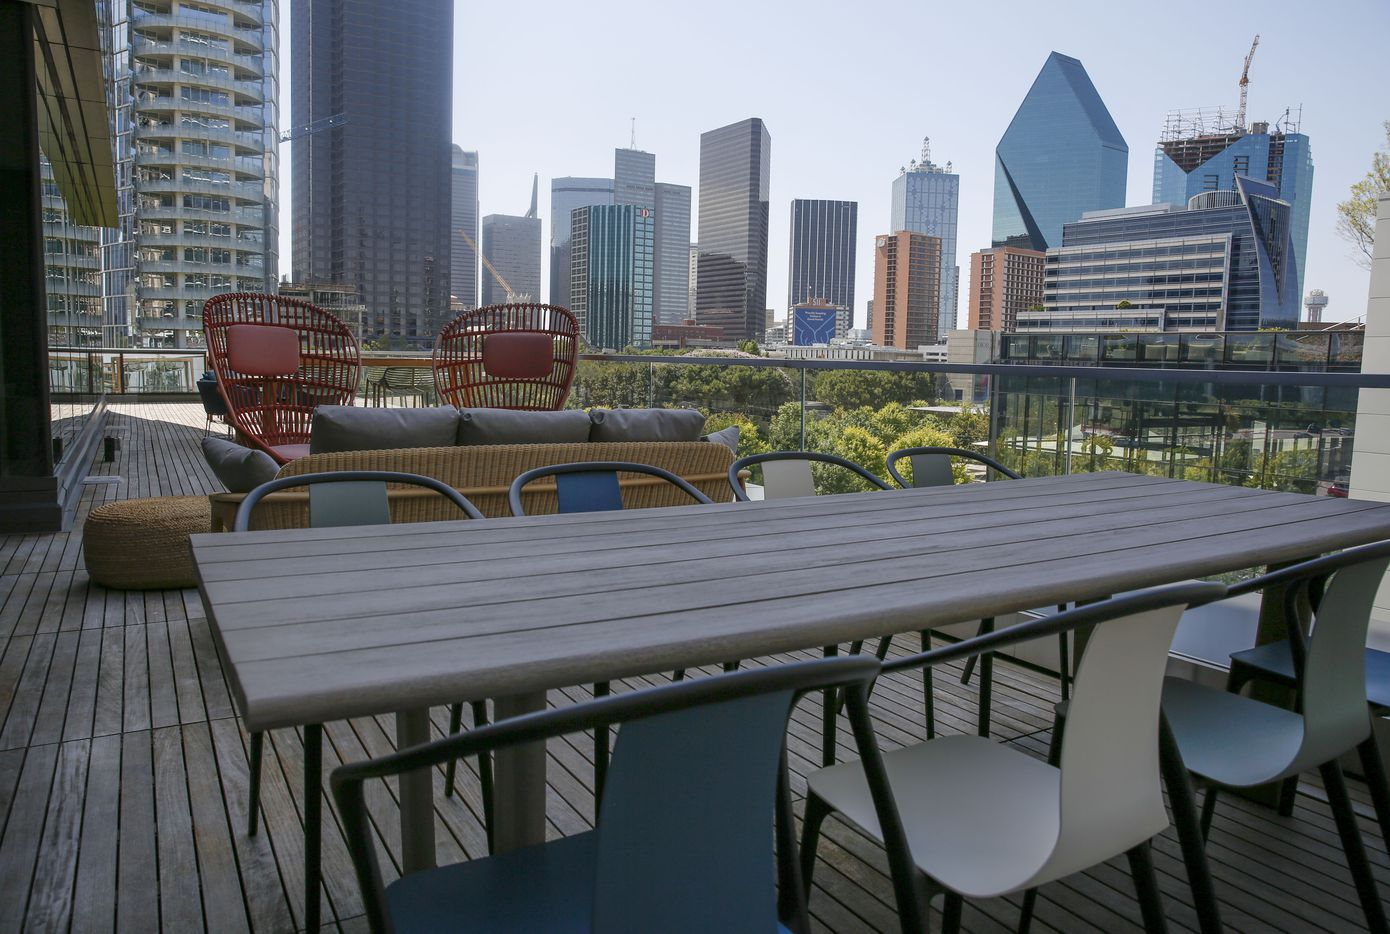 Hana's outdoor coworking space with a view of downtown Dallas.